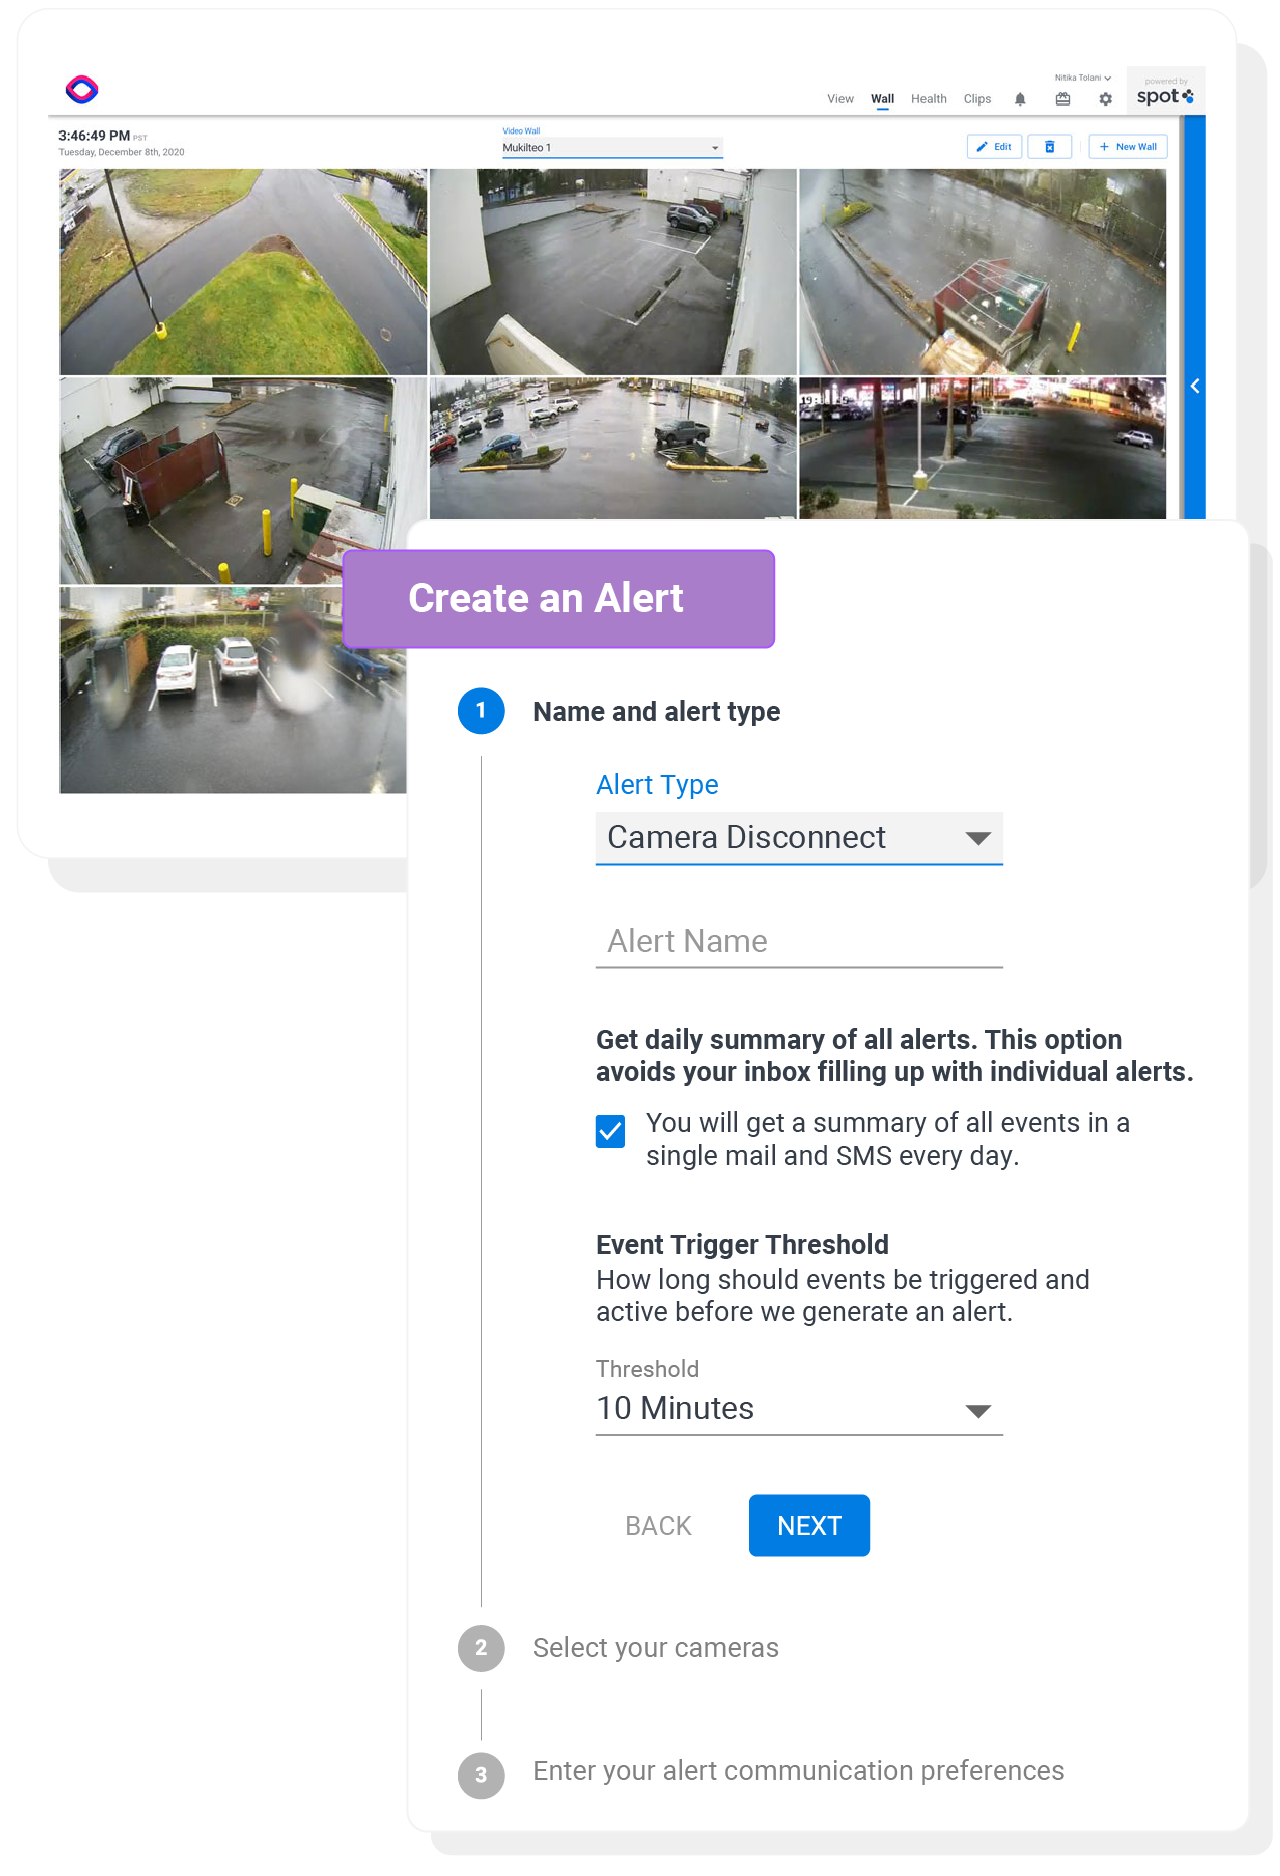 create an alert modal with video wall streaming cloud video surveillance footage